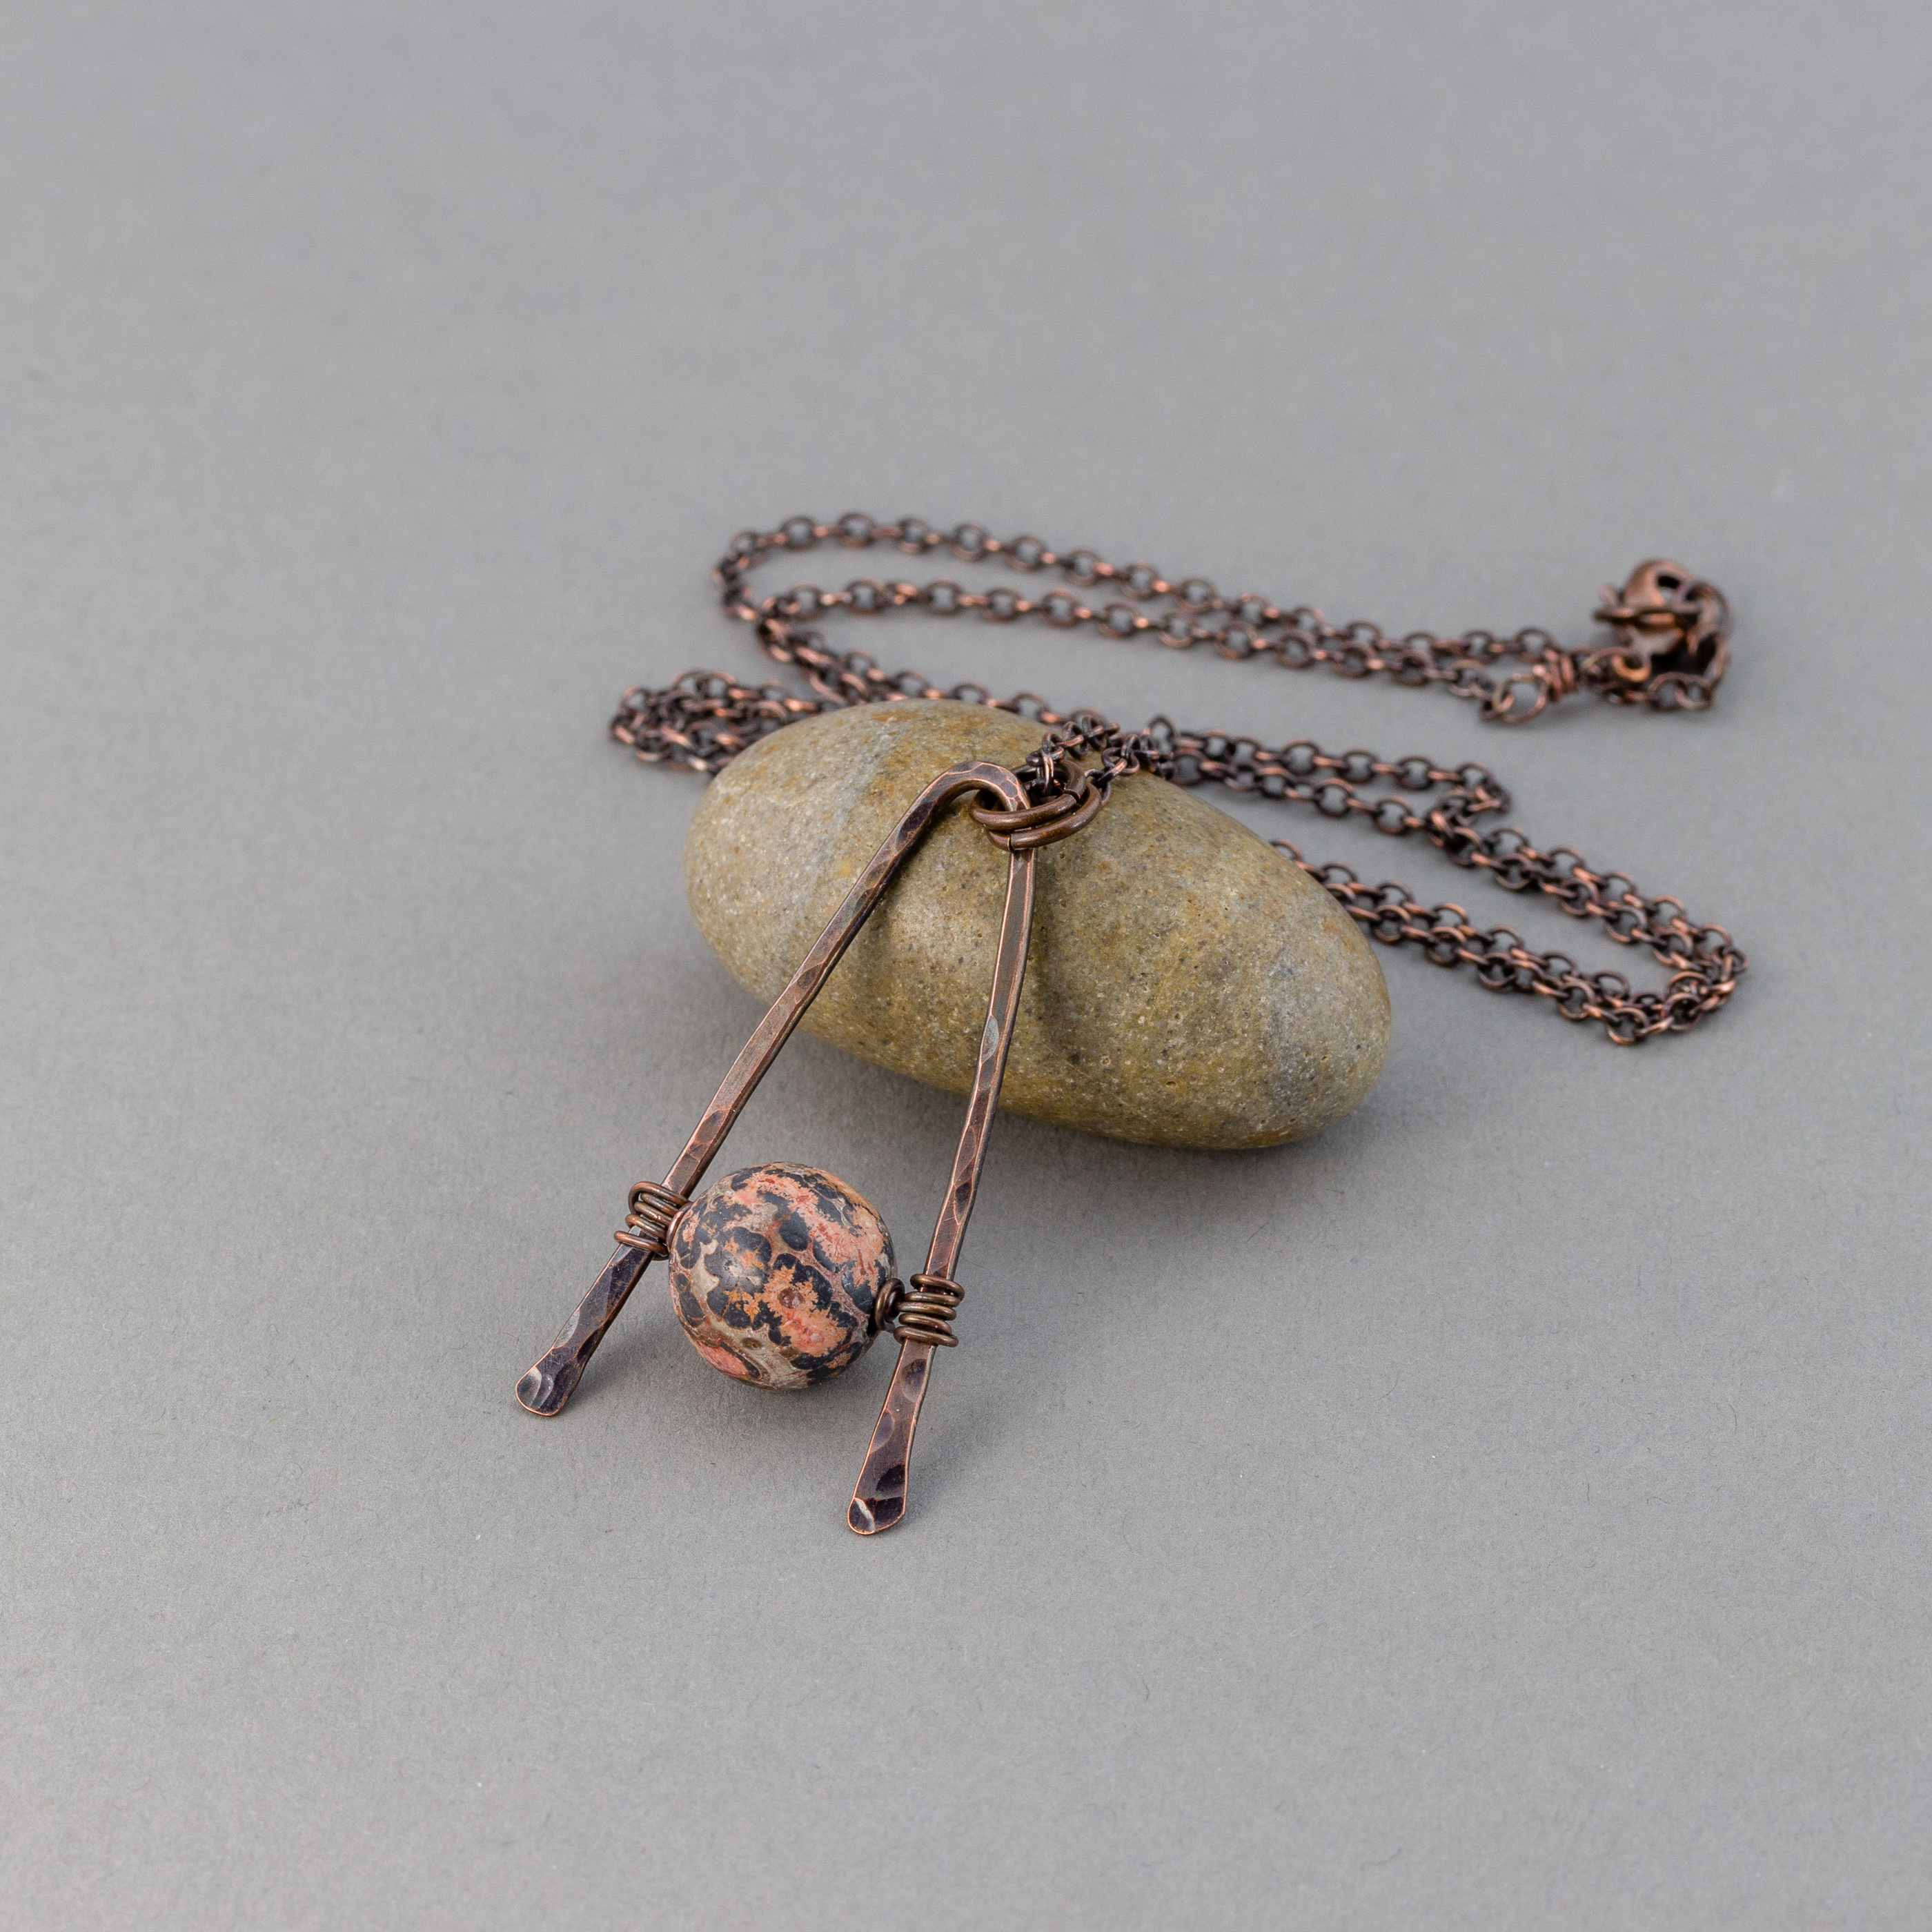 Geometric Pendant Hammered Copper Triangle Necklace With Red Leopardskin Jasper Stone Pebbles At My Feet